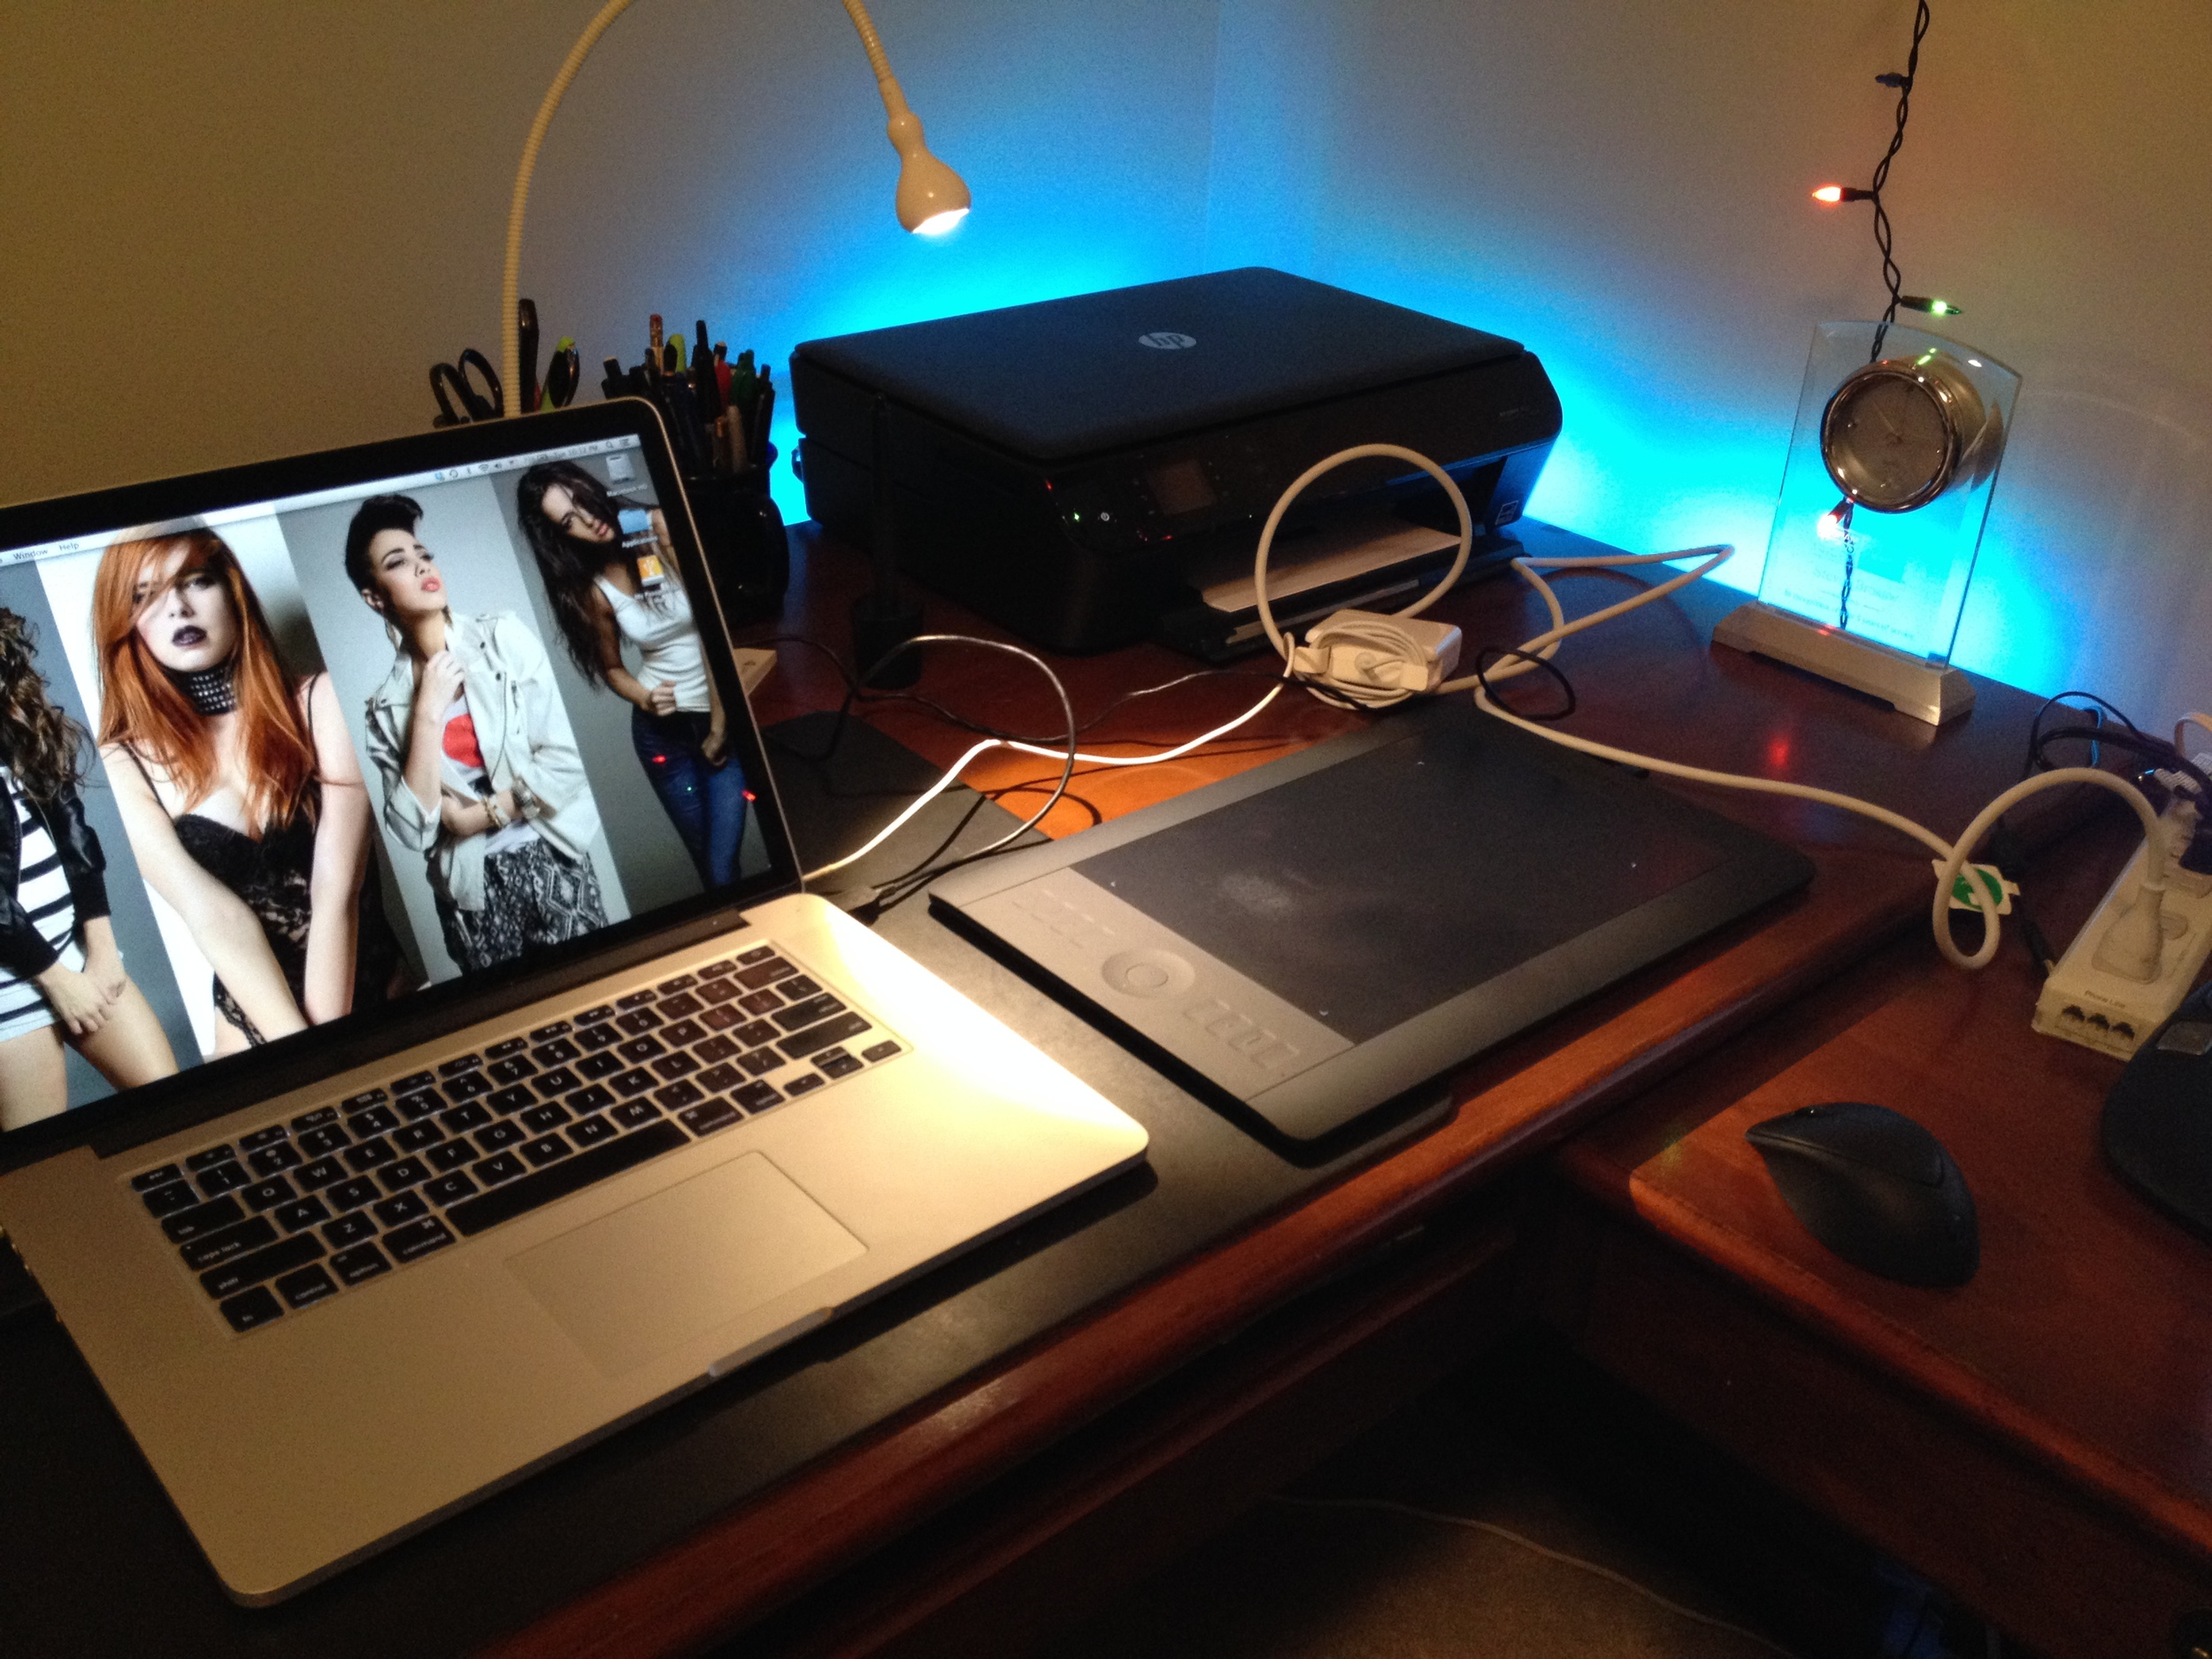 My Intuos 5 Touch in action